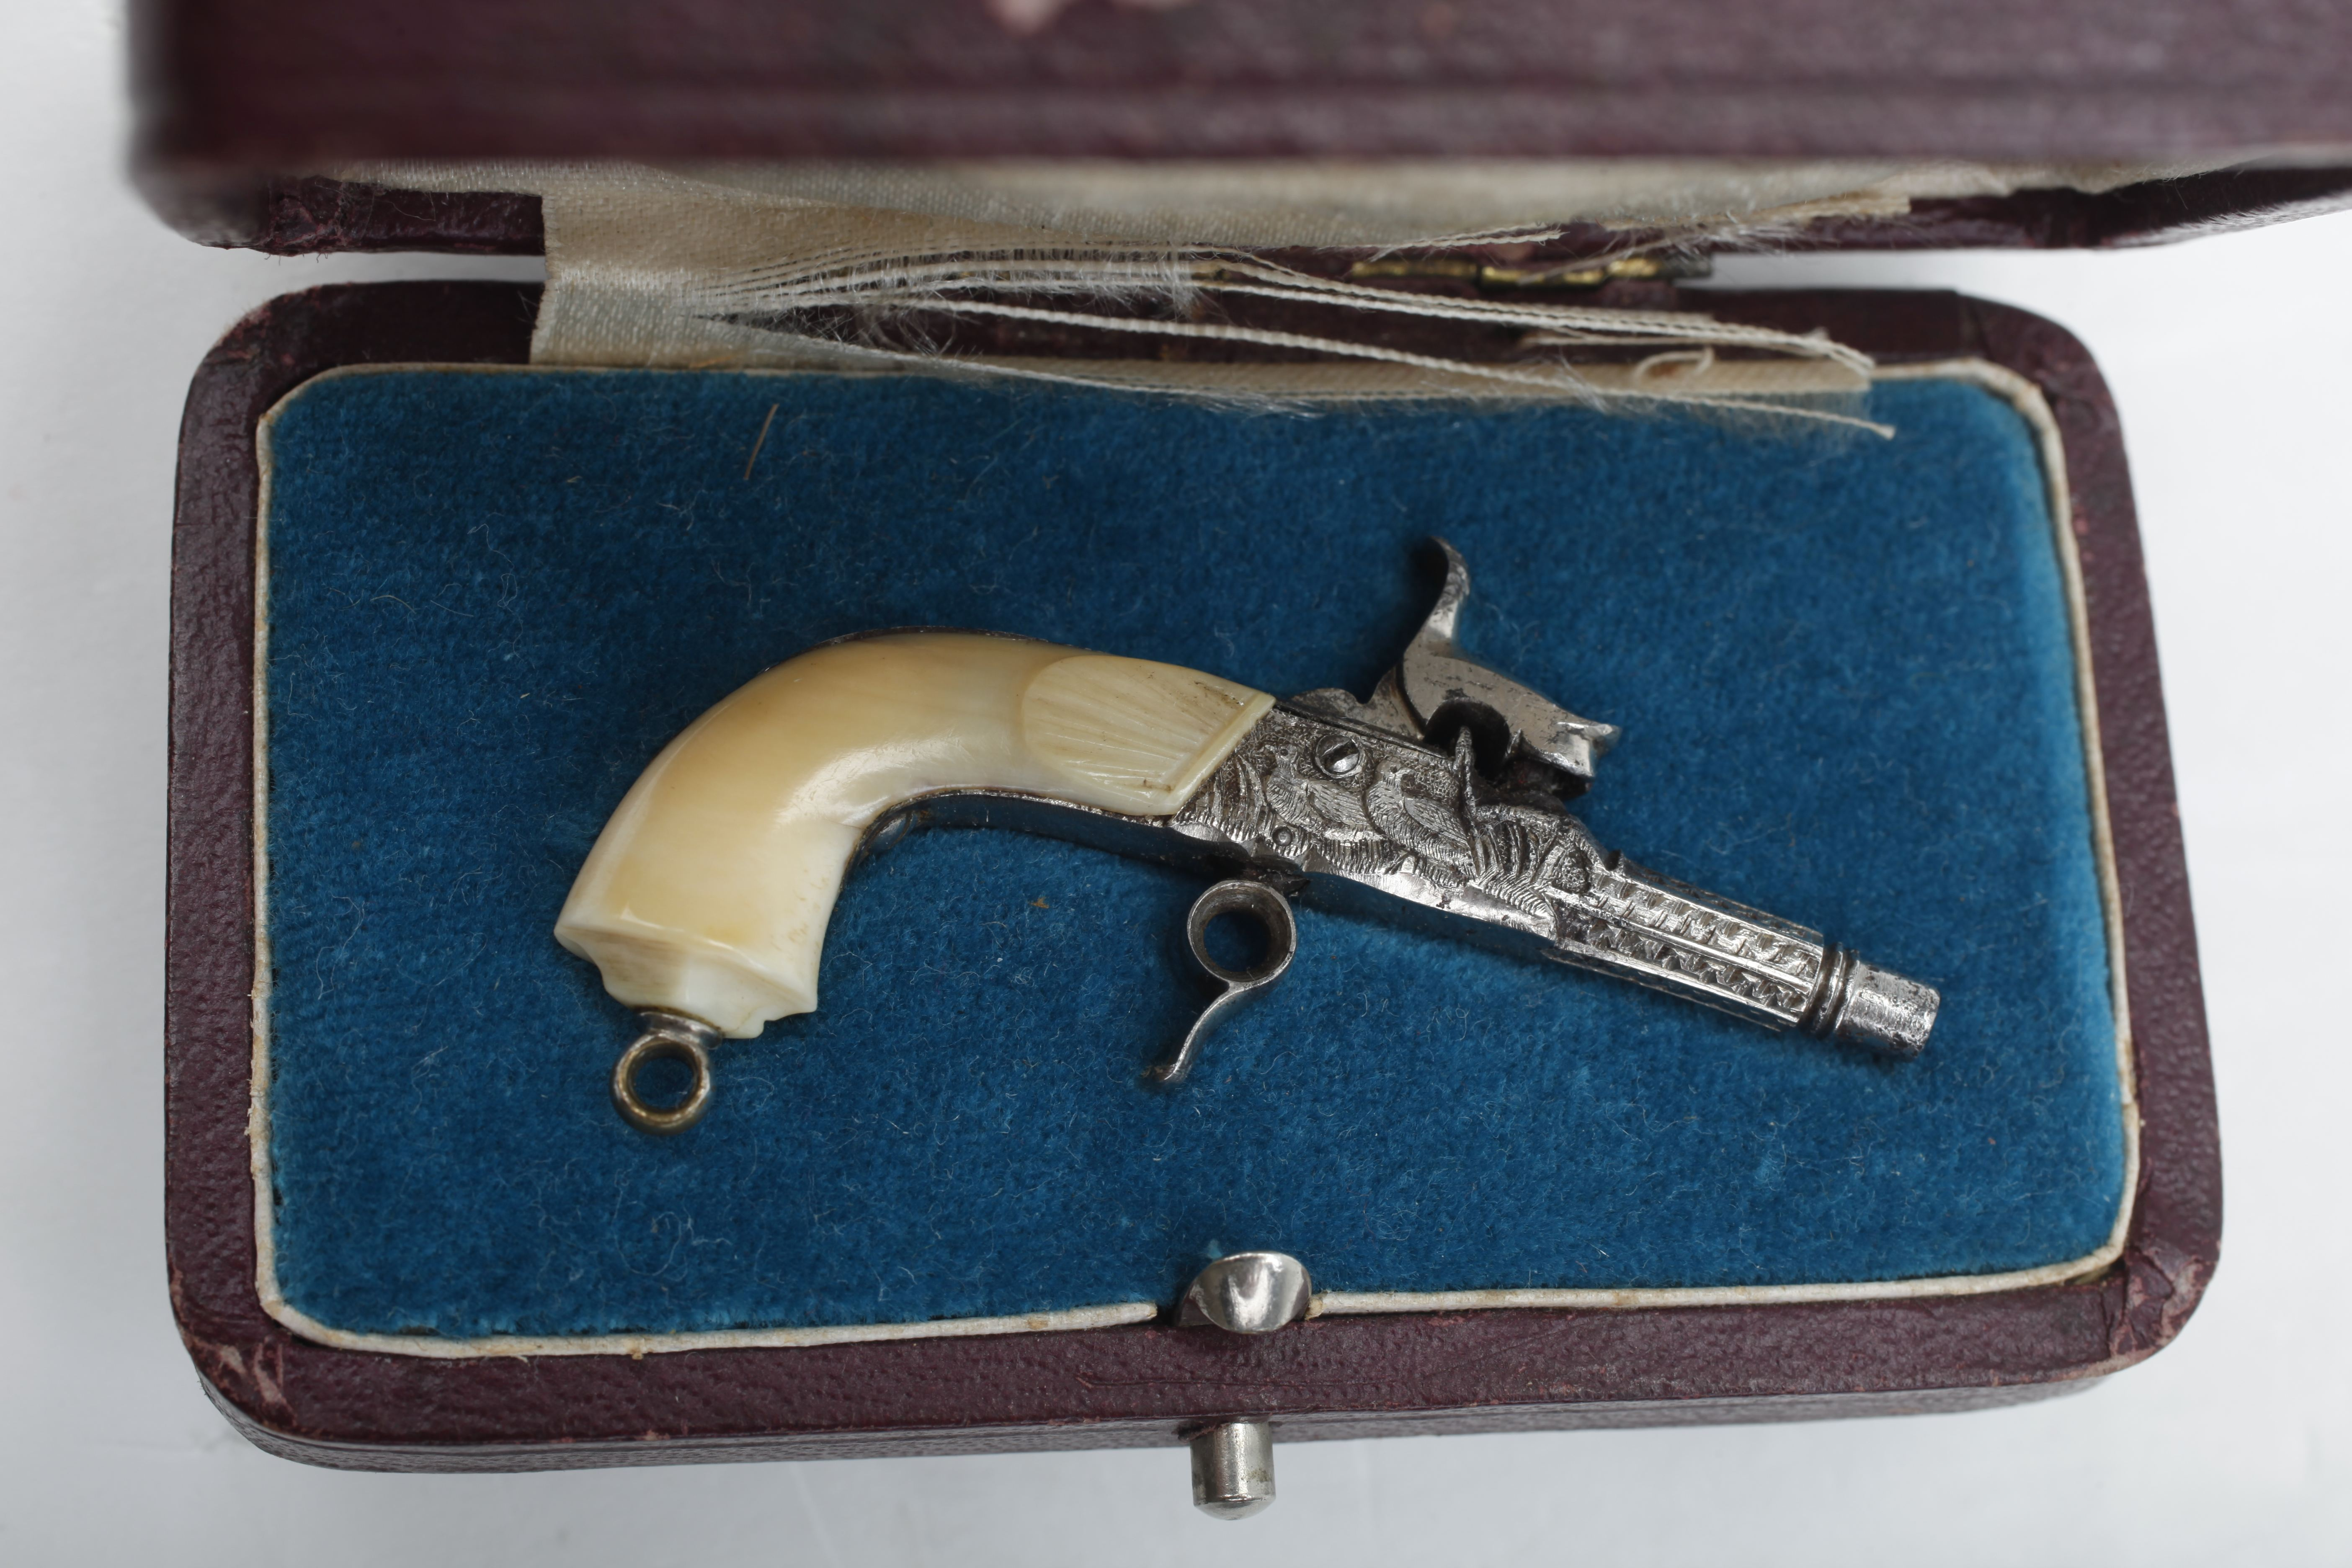 Minature Ivory Stocked Percussion Pistol